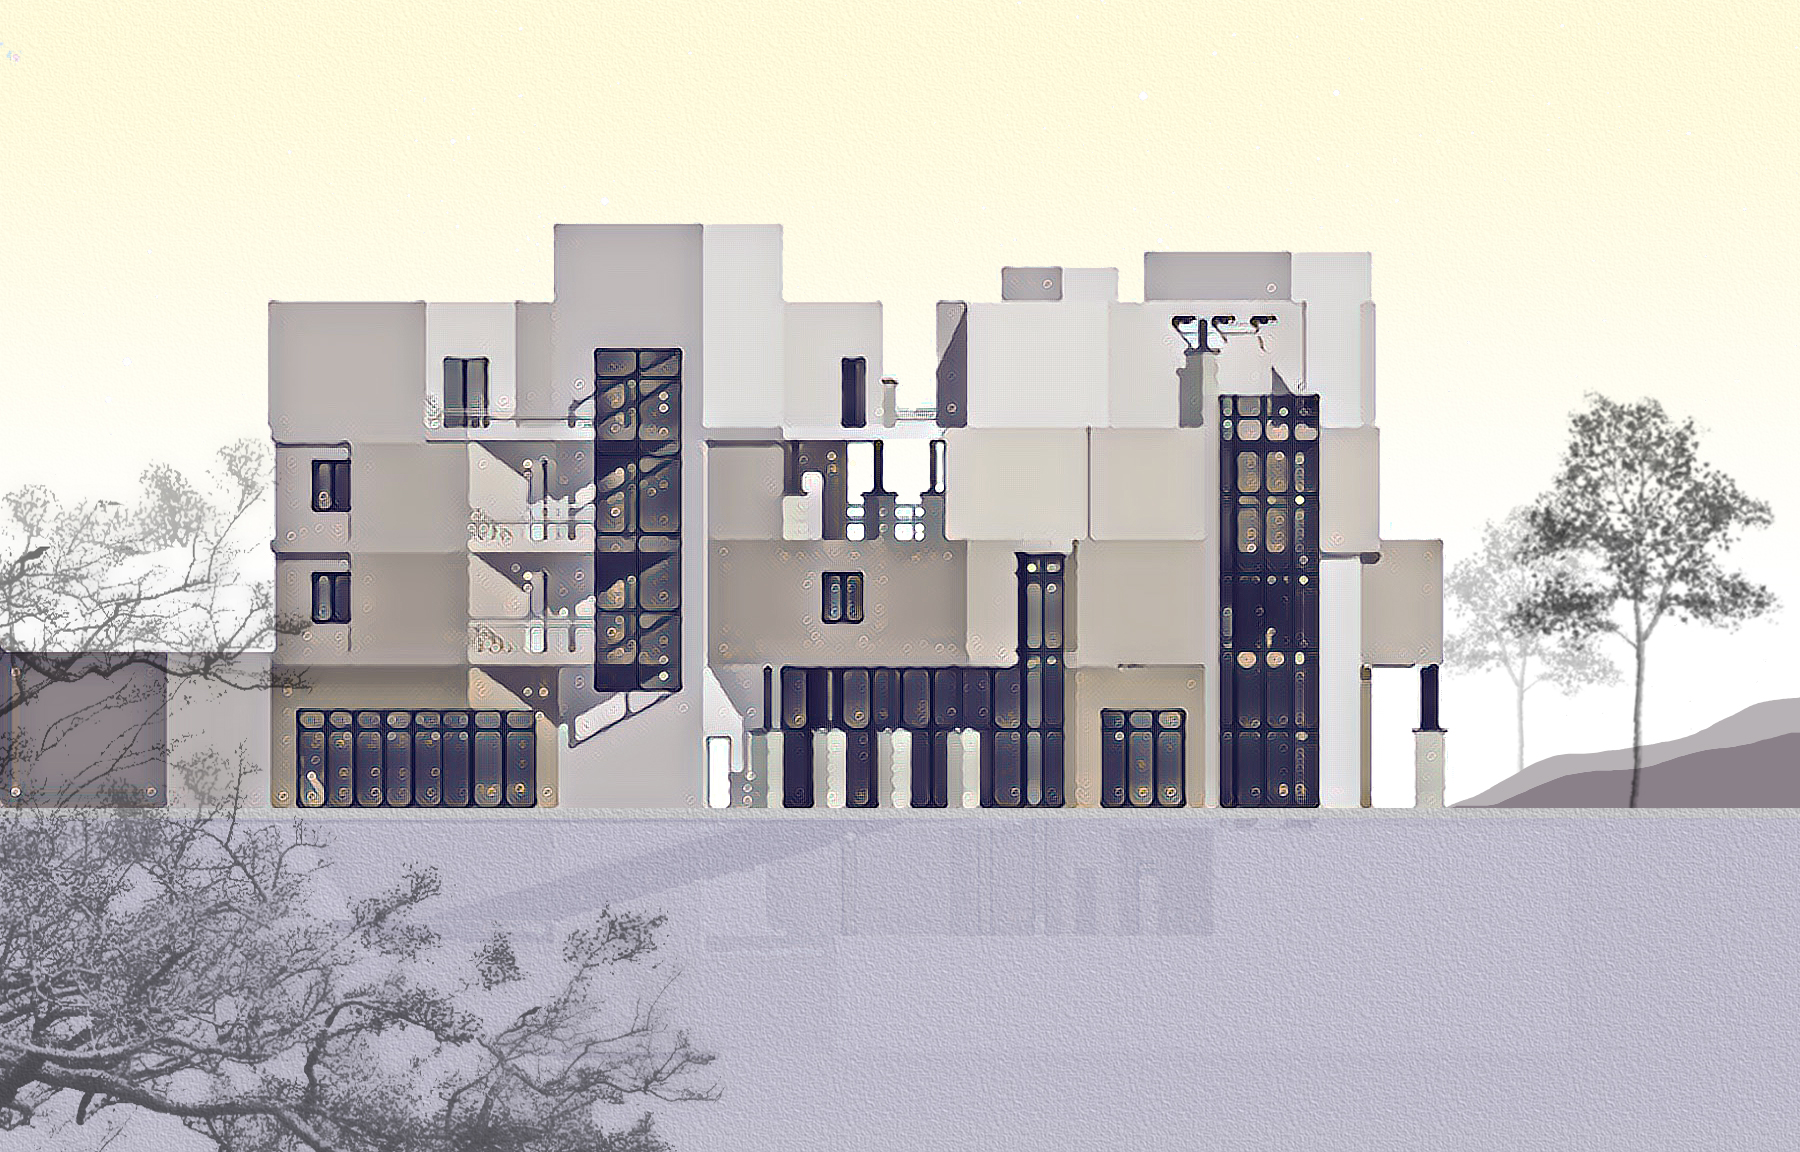 EVIA's conceptual elevation for a mid-rise multifamily development in Mountain View, CA